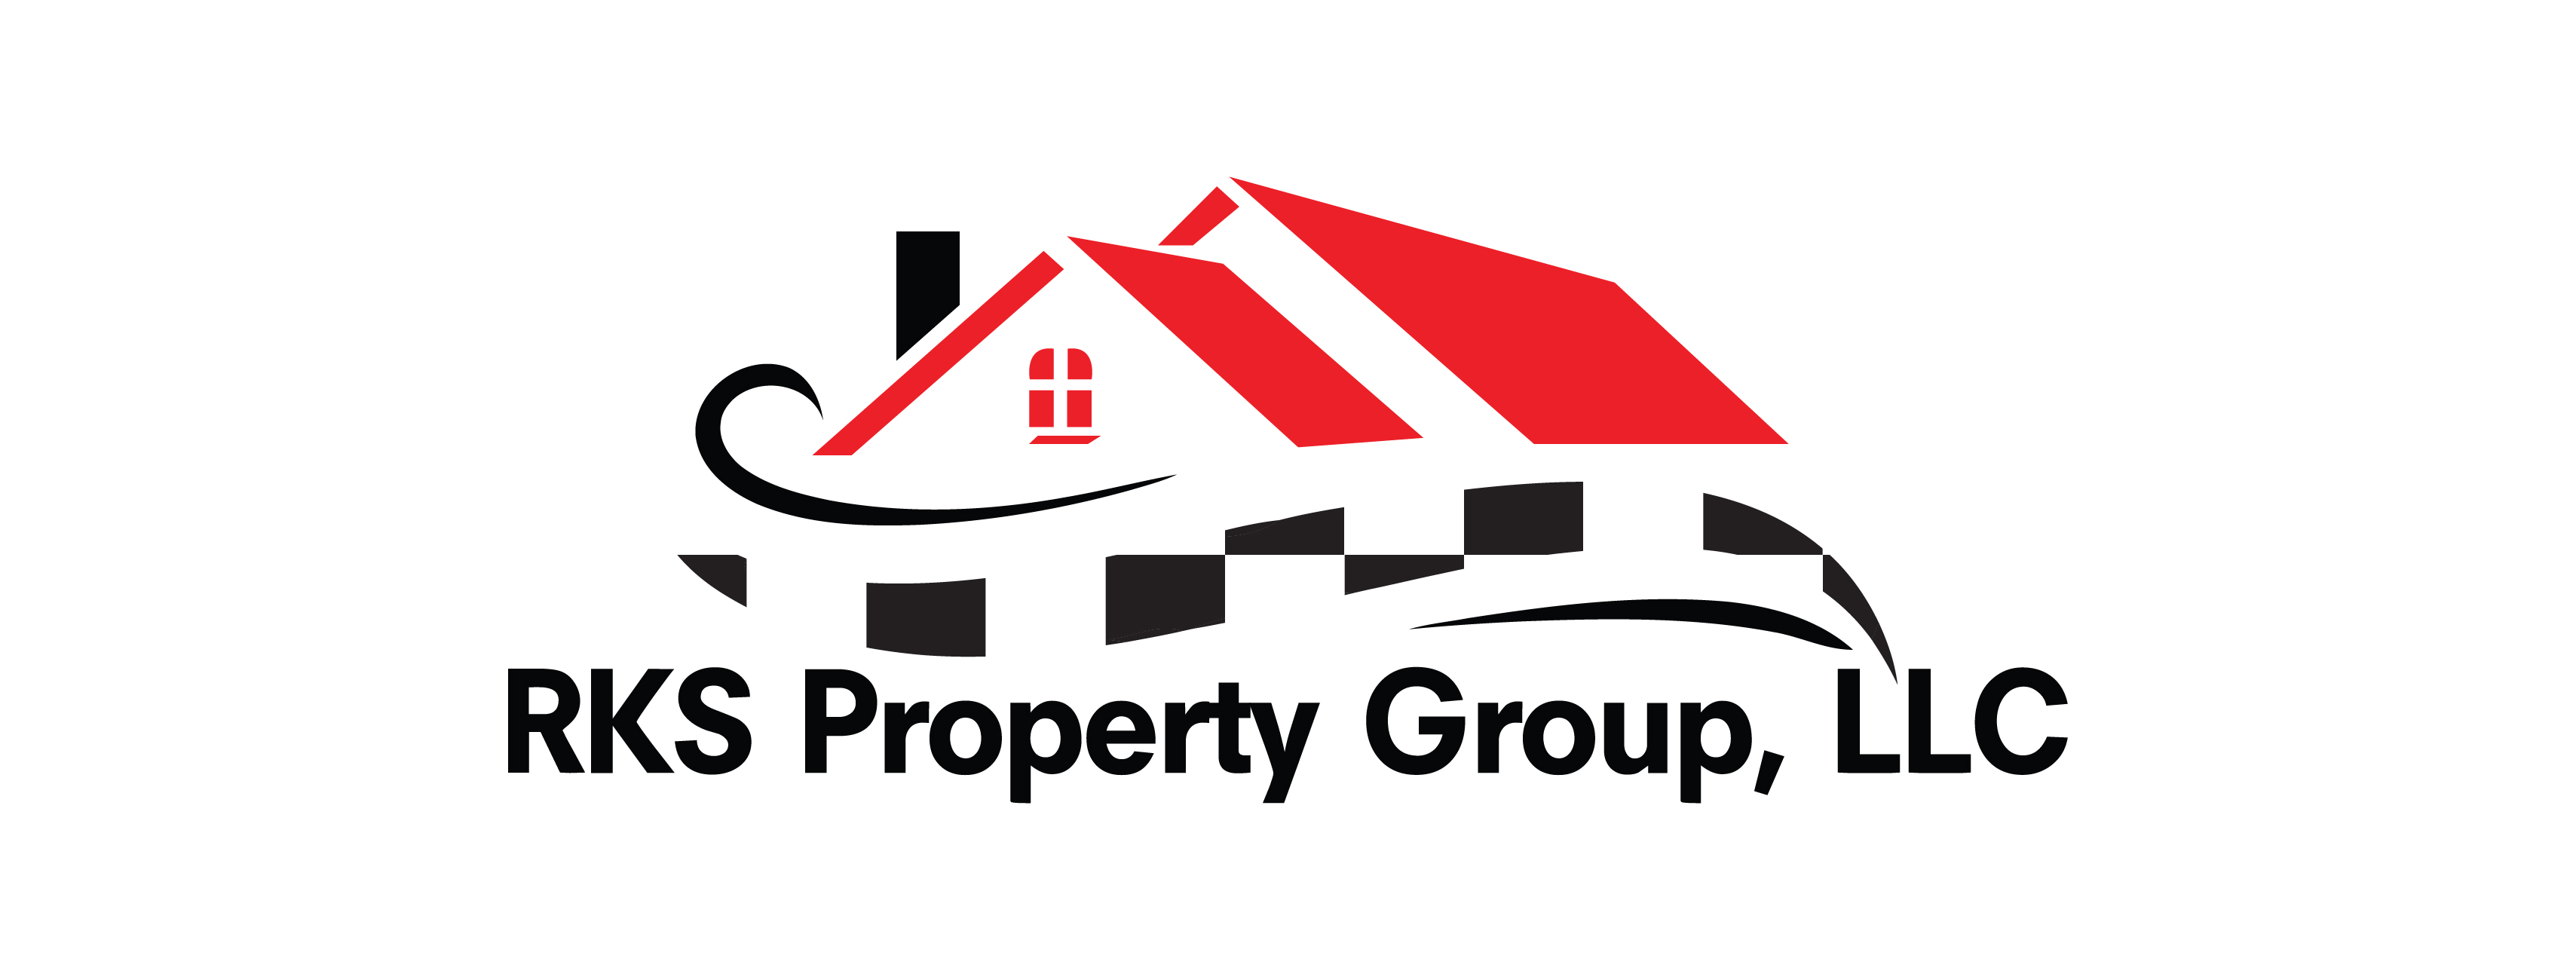 RKS Property Group, LLC